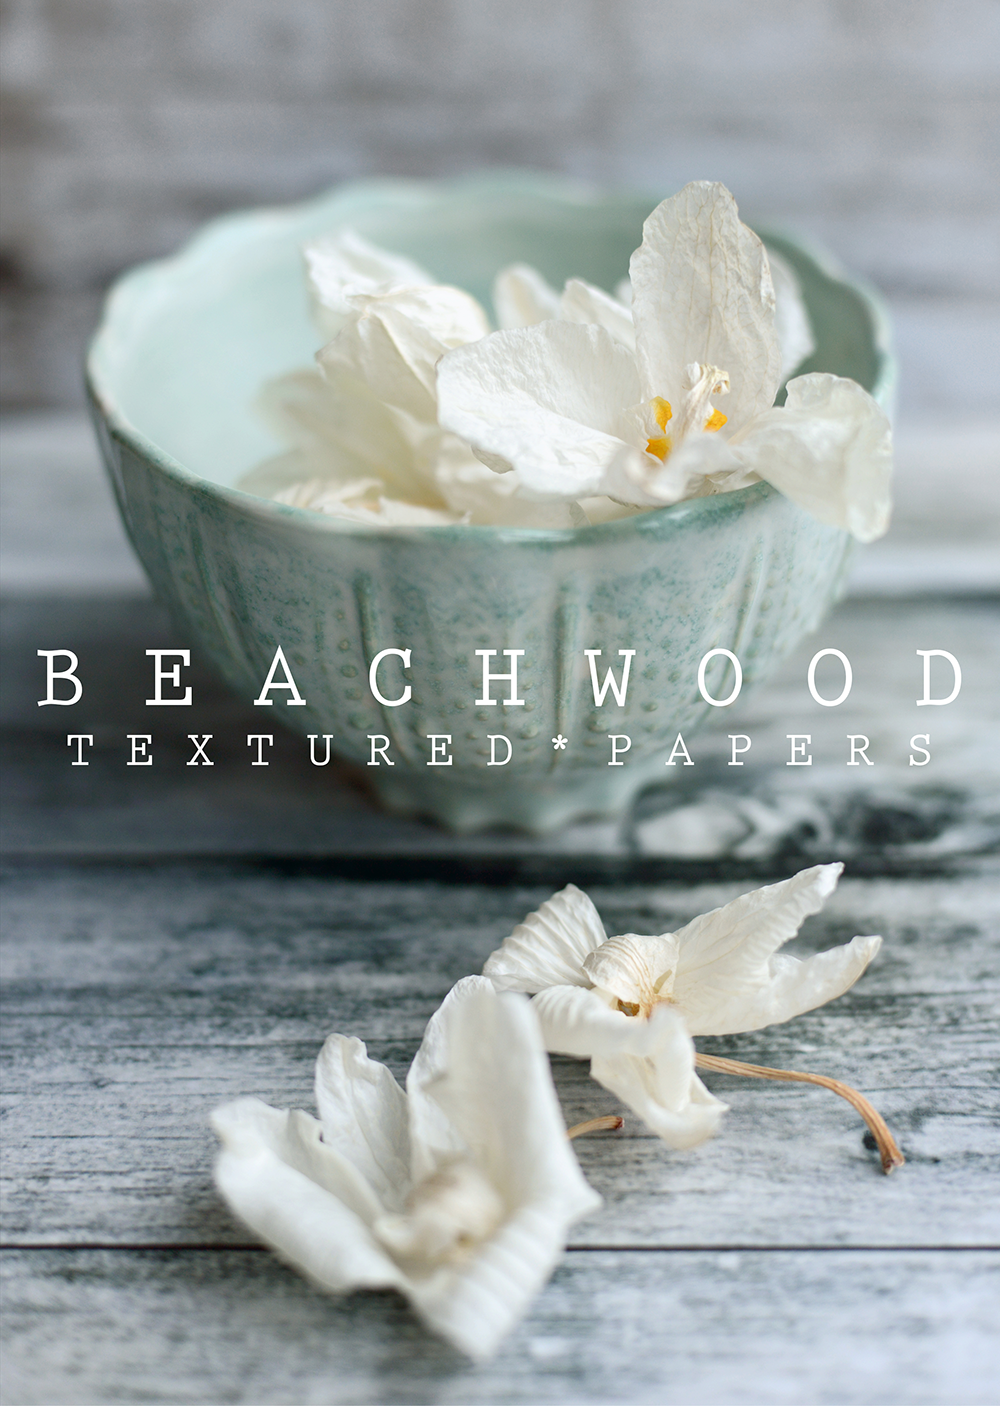 Beachwood Textured Papers